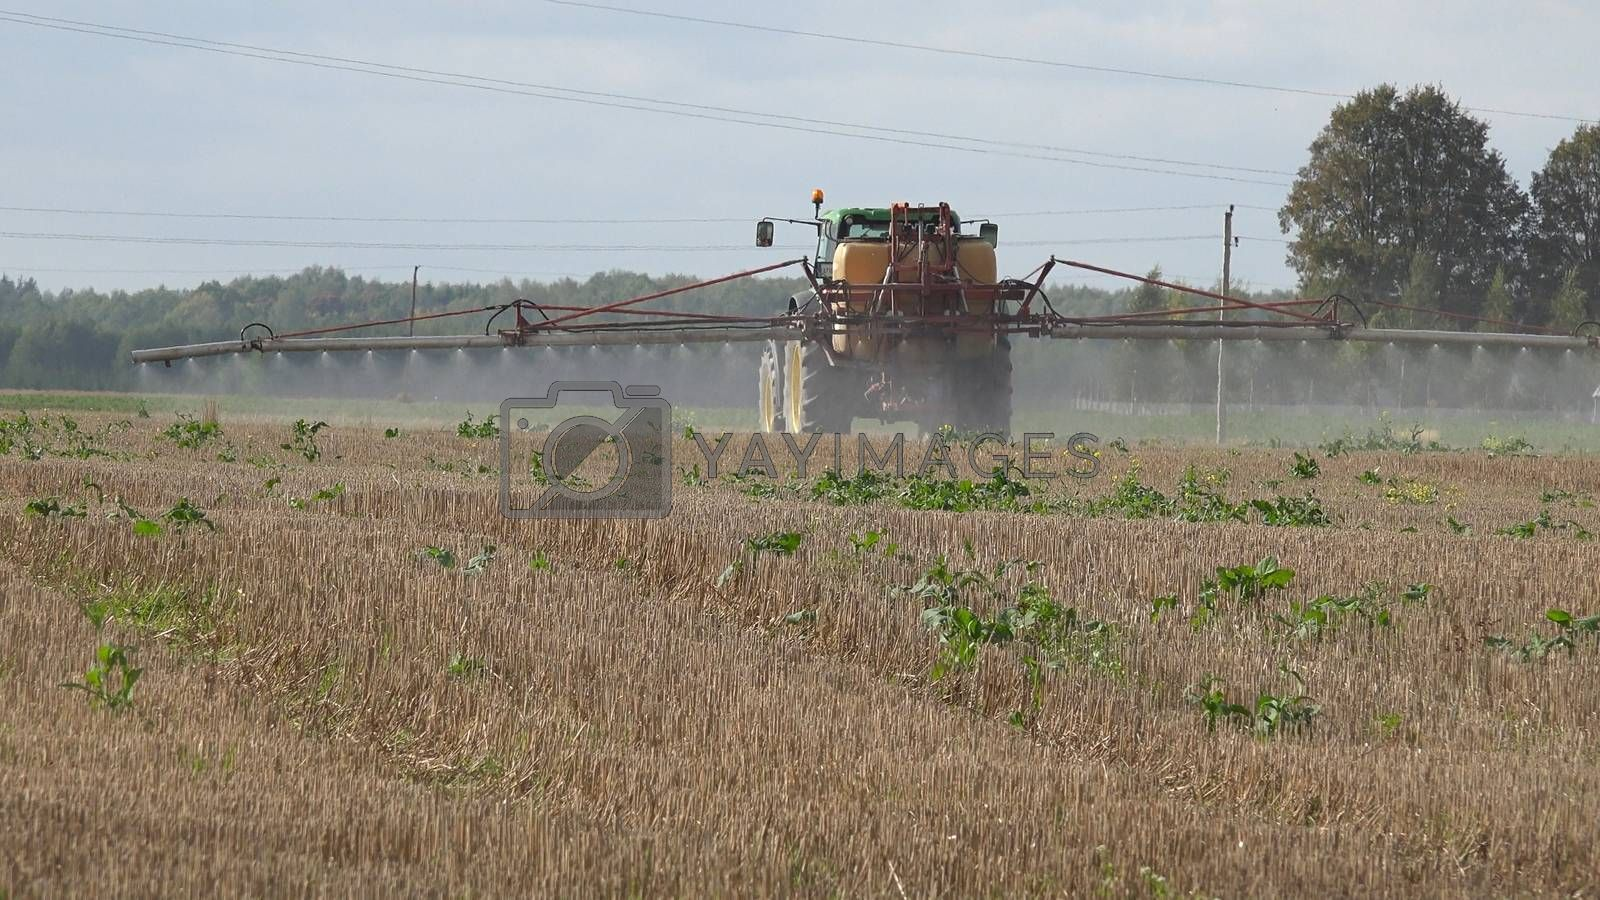 Tractor spray stubble field with herbicide chemicals in autumn. Farmer killing weeds in agriculture field before winter.